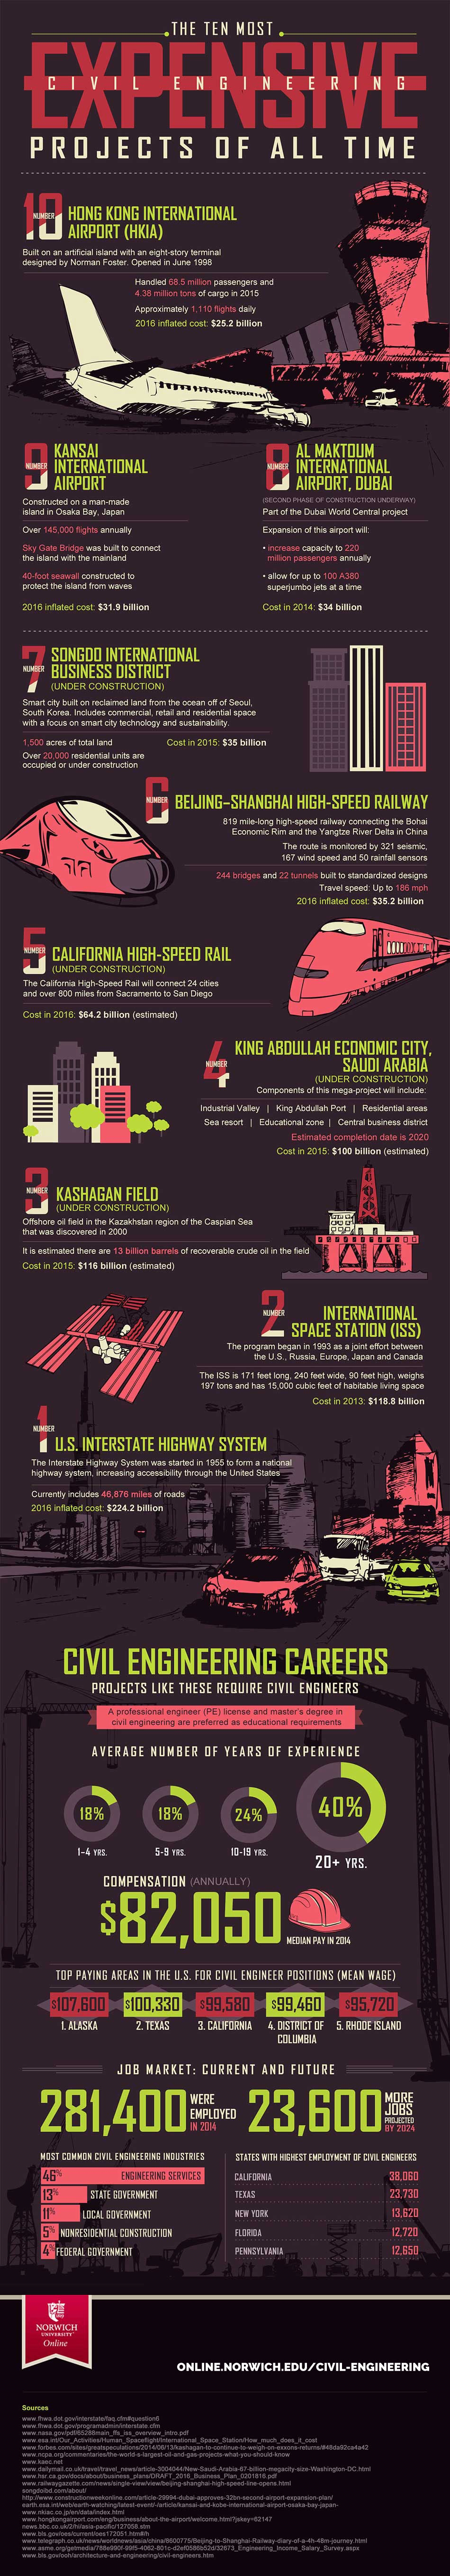 expensive engineering projects infographic image